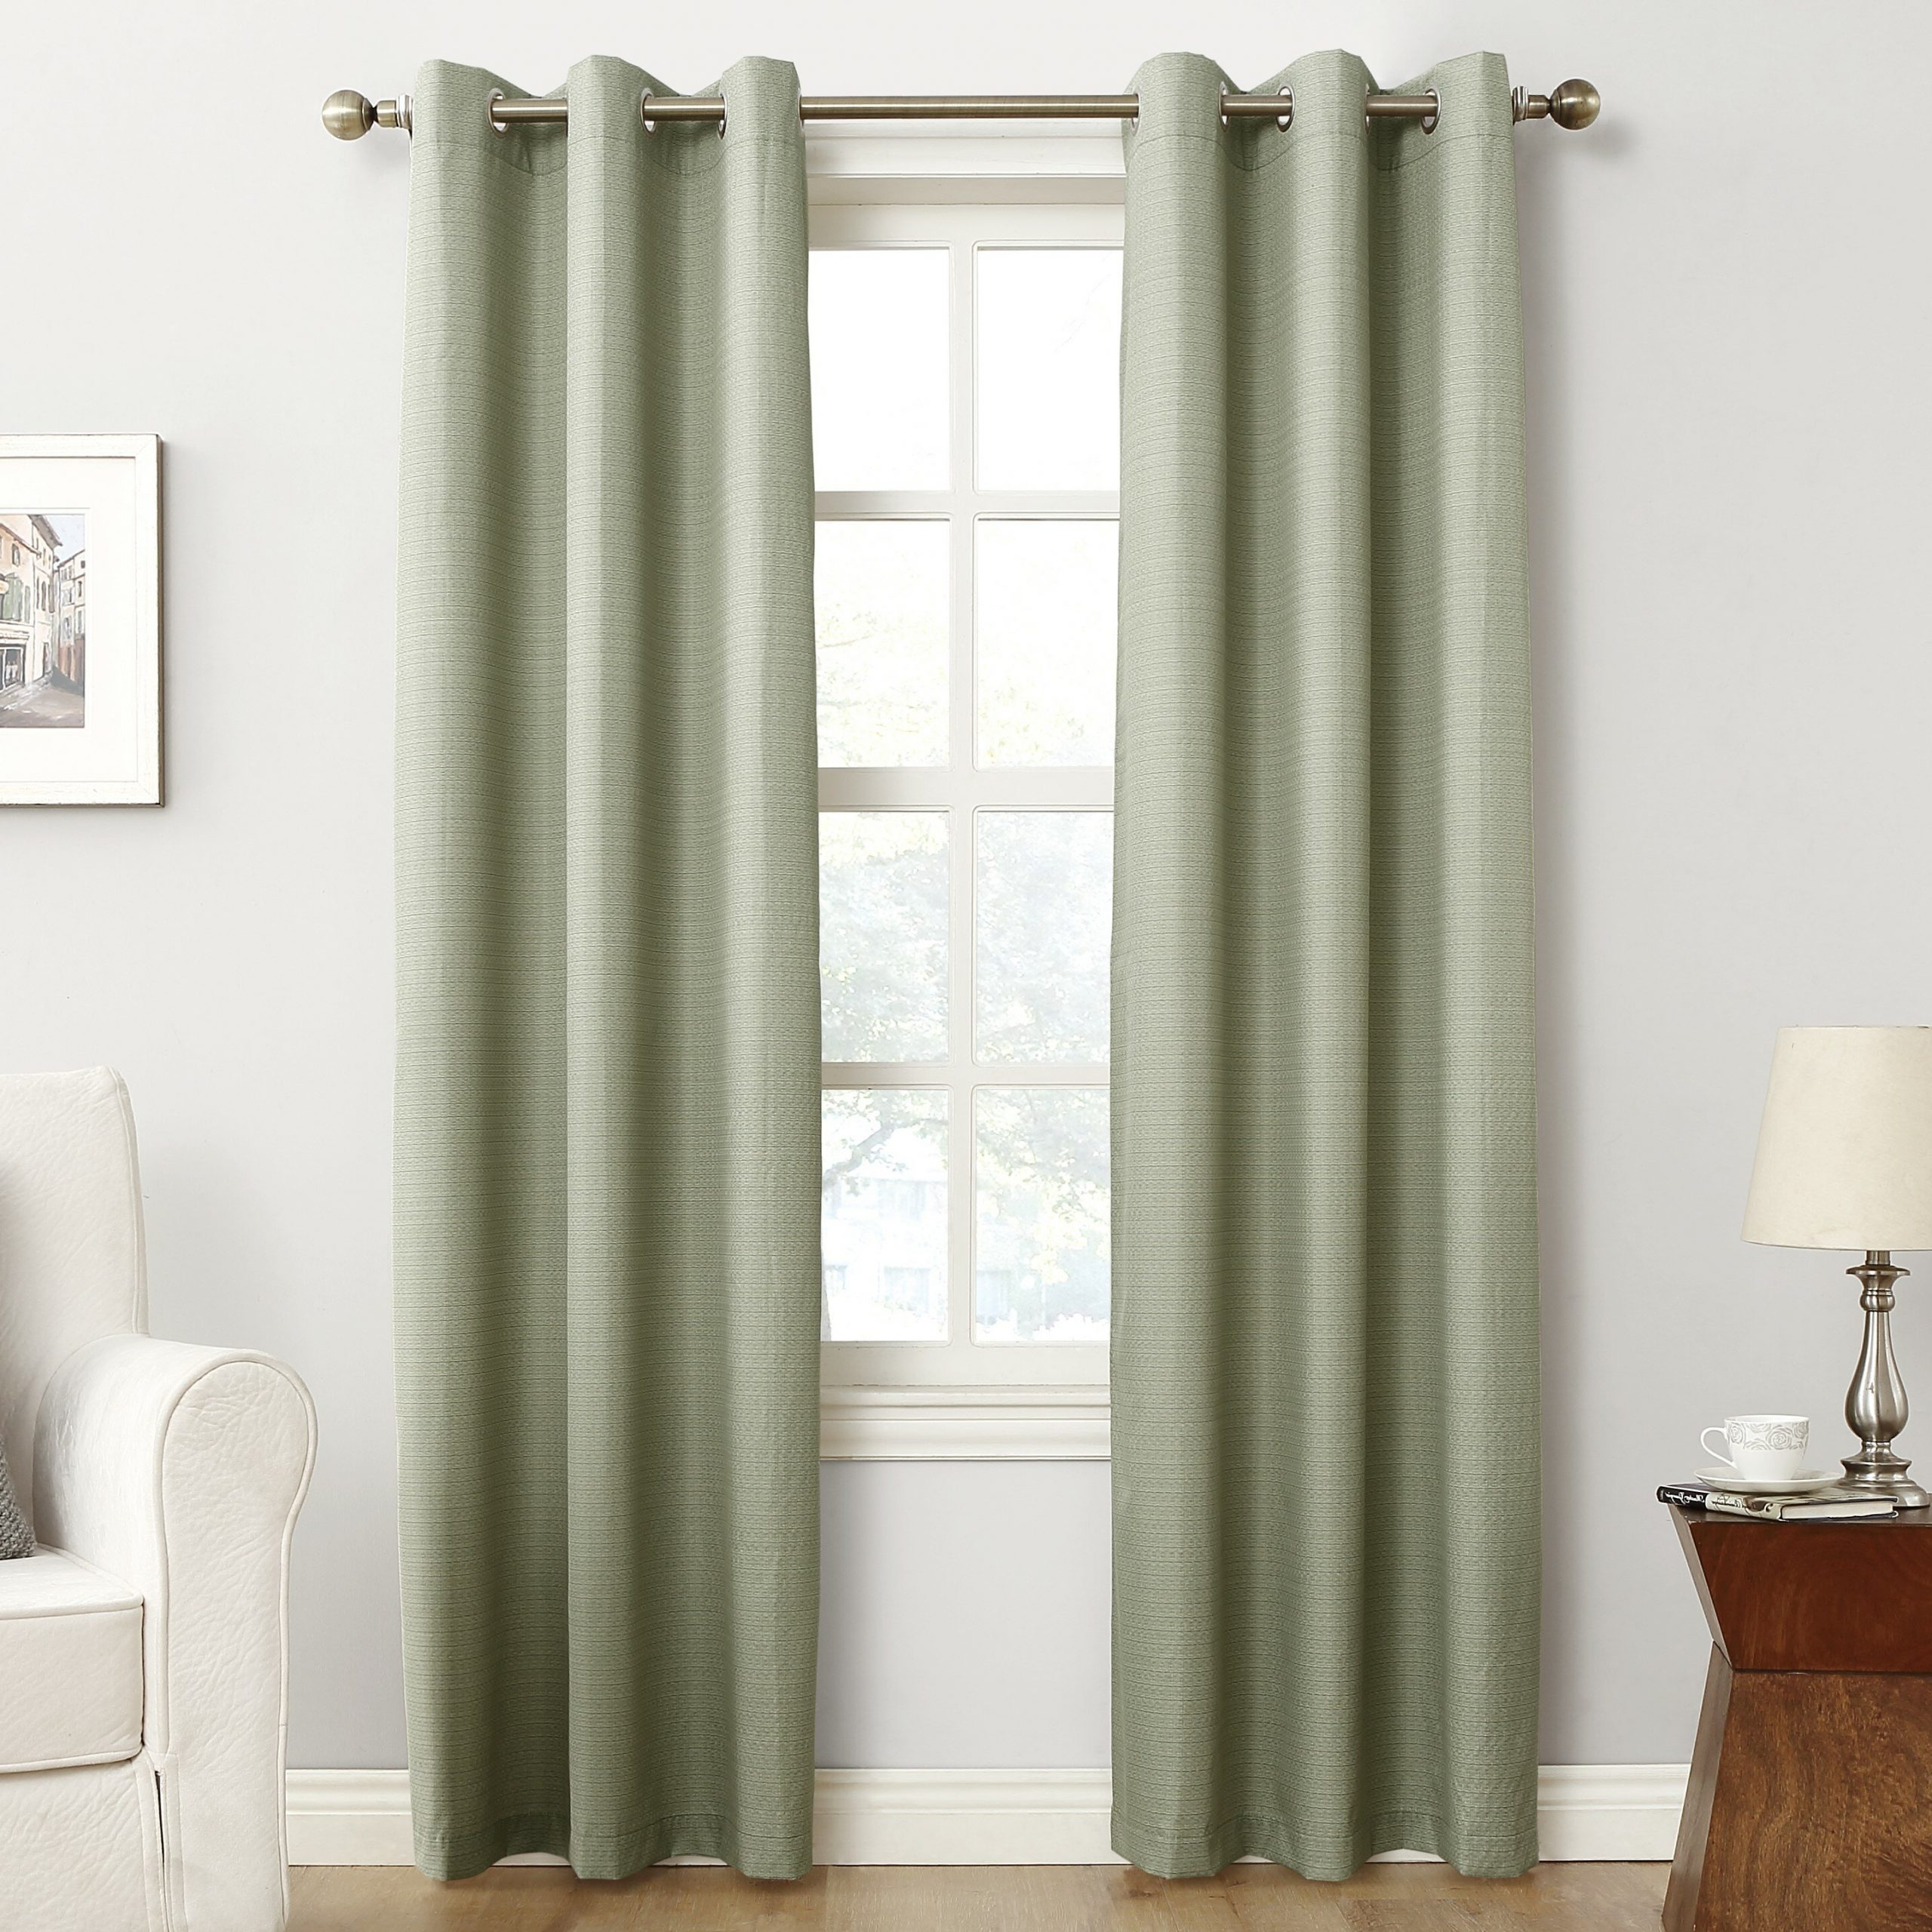 Widely Used Cooper Textured Solid Blackout Thermal Grommet Single Curtain Panel Throughout Cooper Textured Thermal Insulated Grommet Curtain Panels (View 20 of 20)